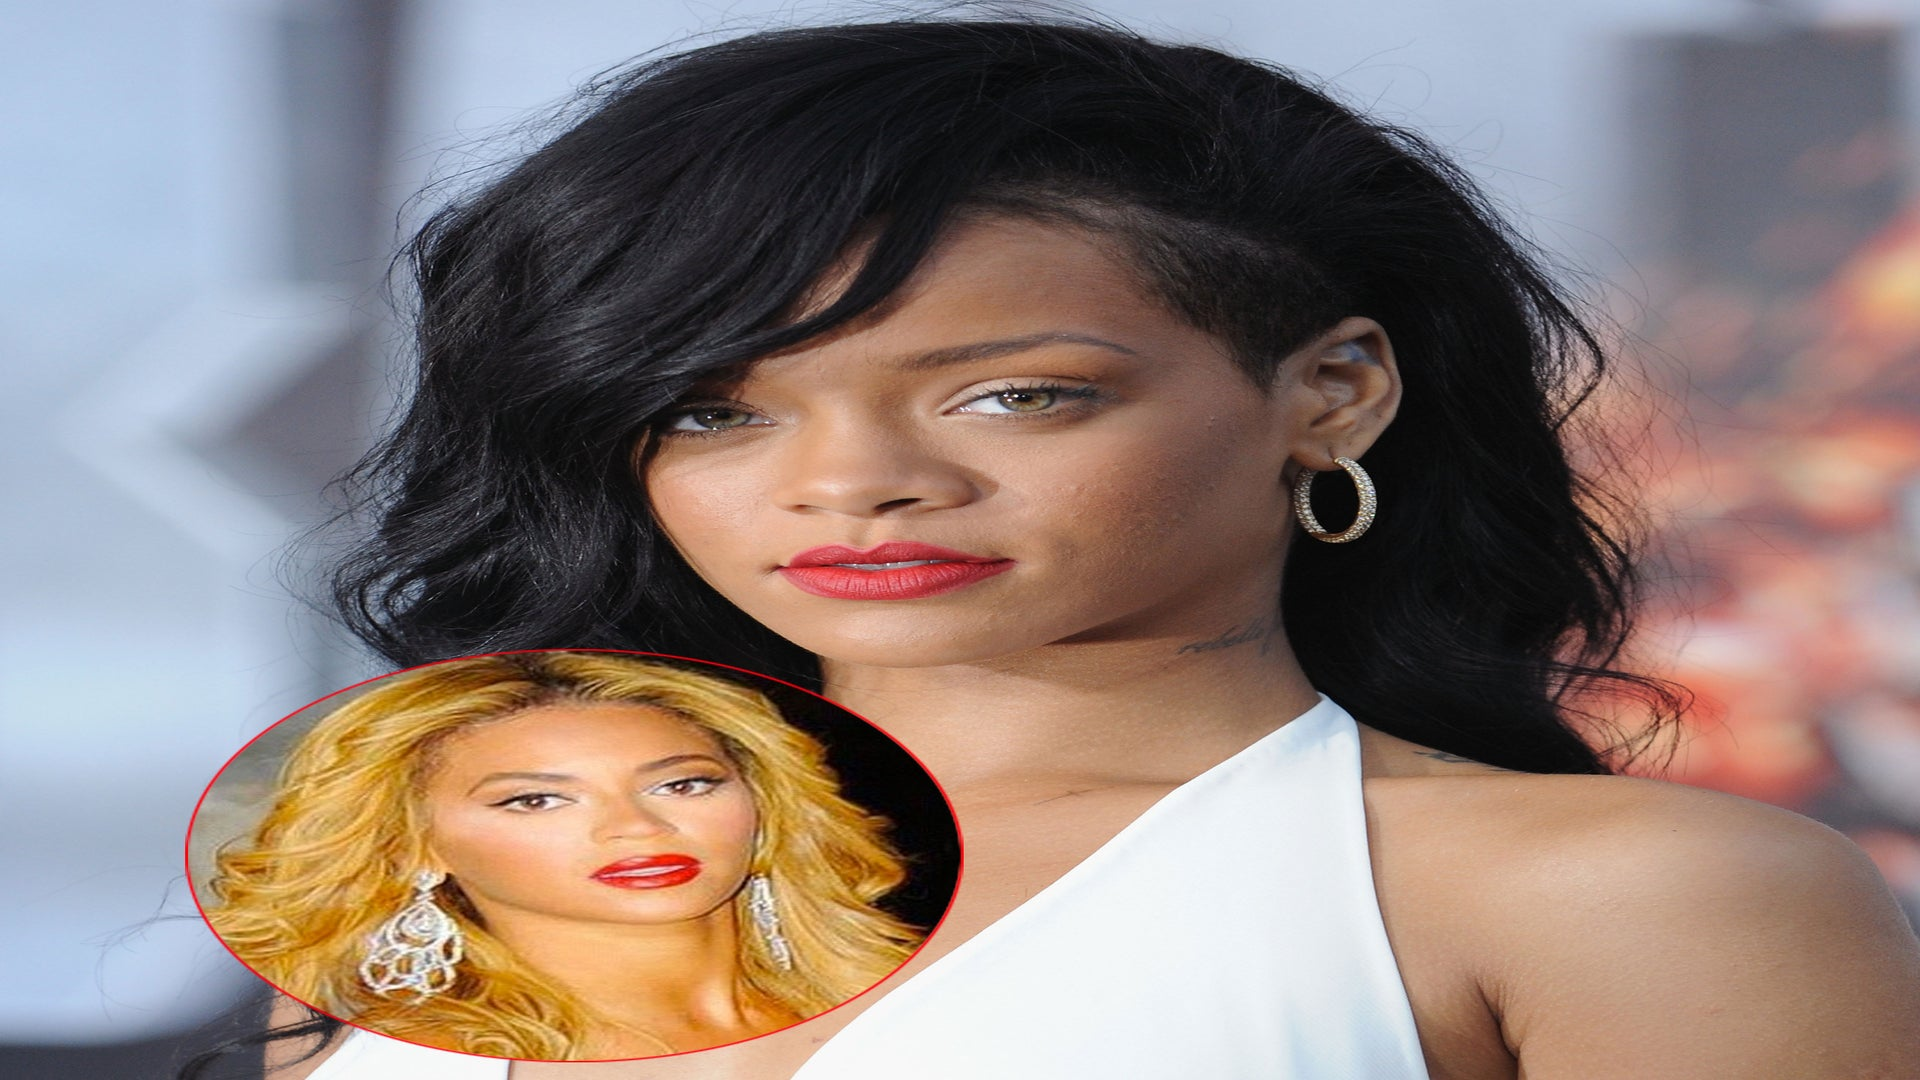 Rihanna Shares Girl Crush on Beyoncé, Suffers Legal Woes